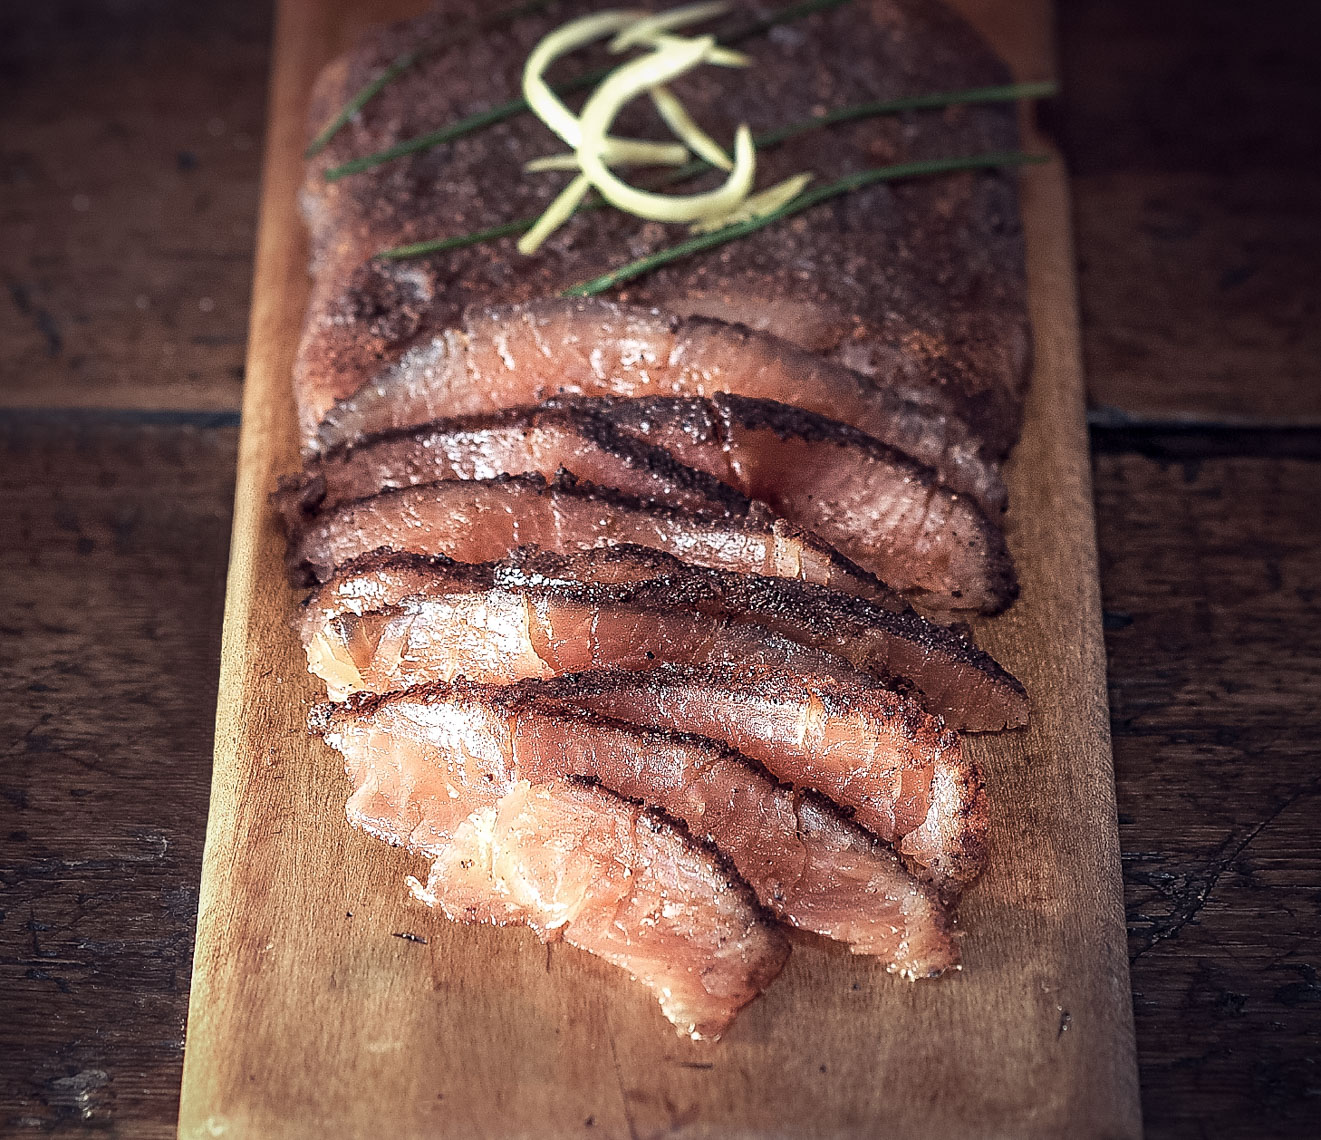 thinly sliced and seasoned smoked salmon on wooden surface